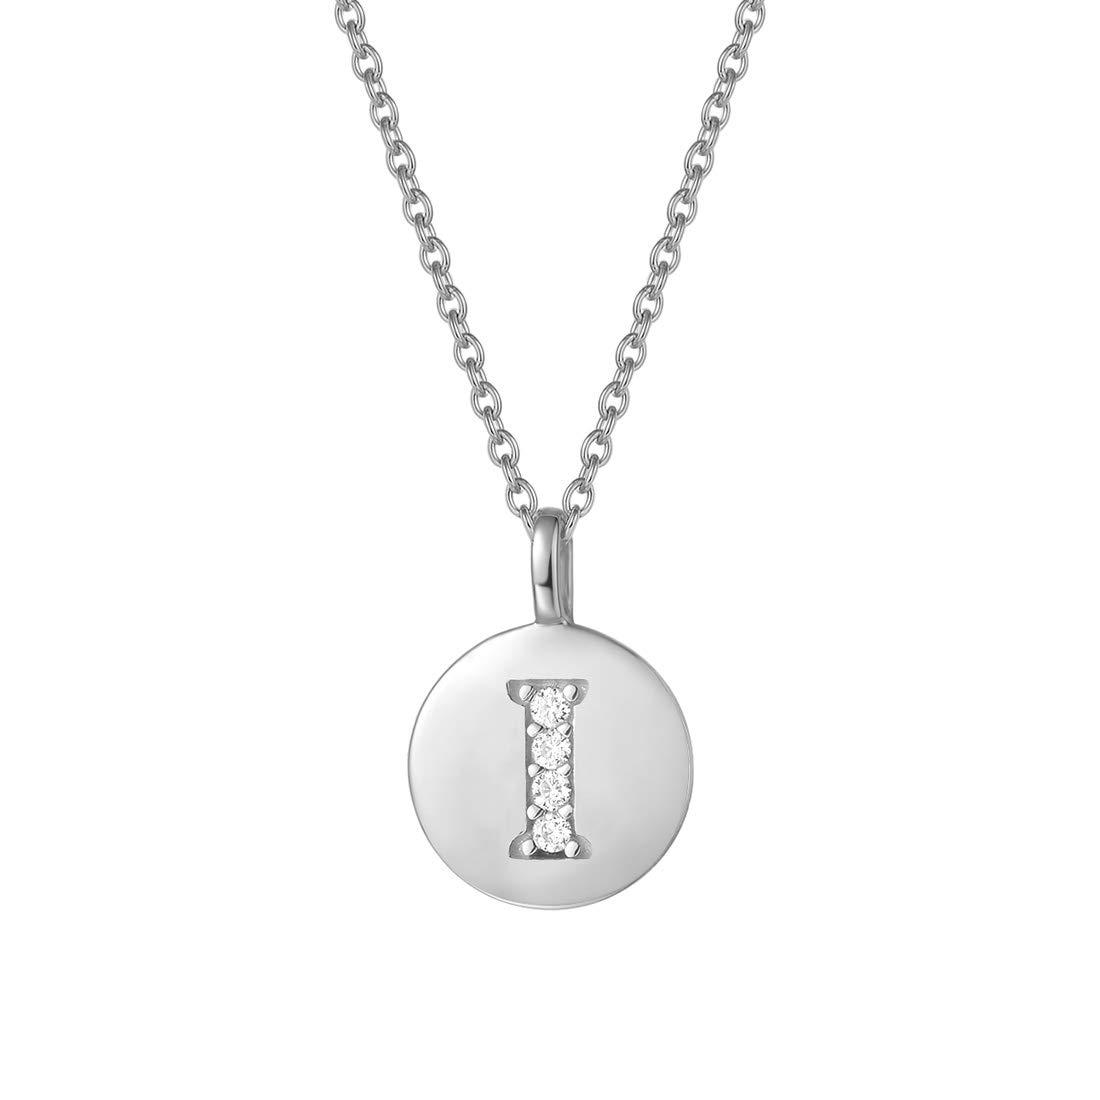 Agvana Sterling Silver Initial Pendant Necklace Round Disc CZ Initial White Gold Plated Dainty Letter Necklace Gifts for Women 16+2 Extender Chain